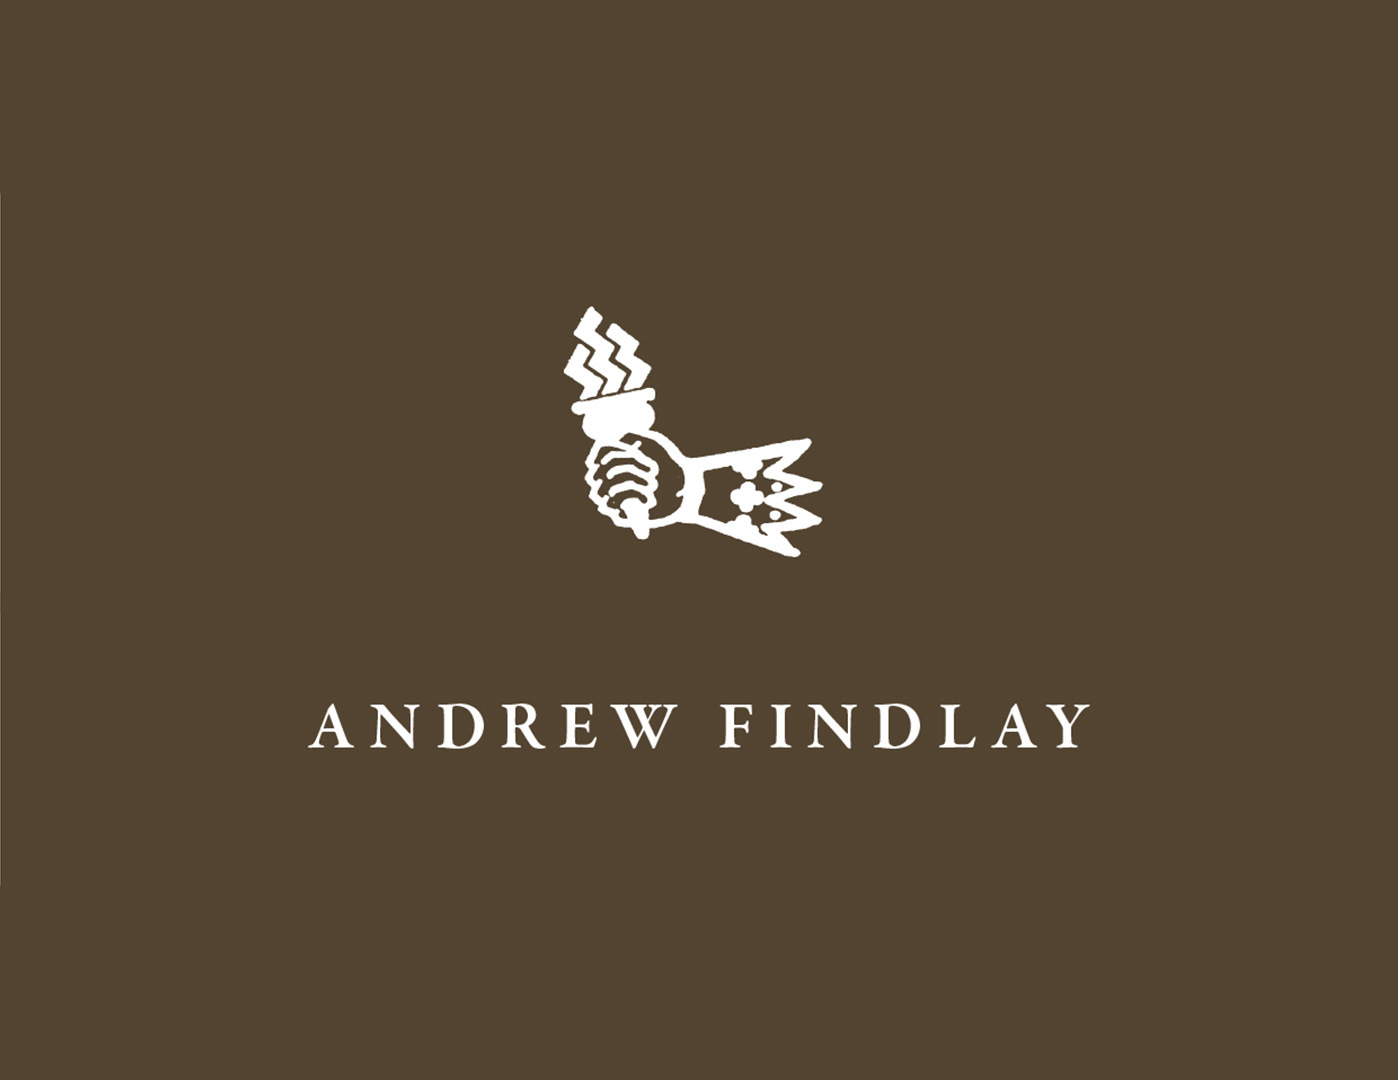 Andrew Findlay Leaflet Design + Print